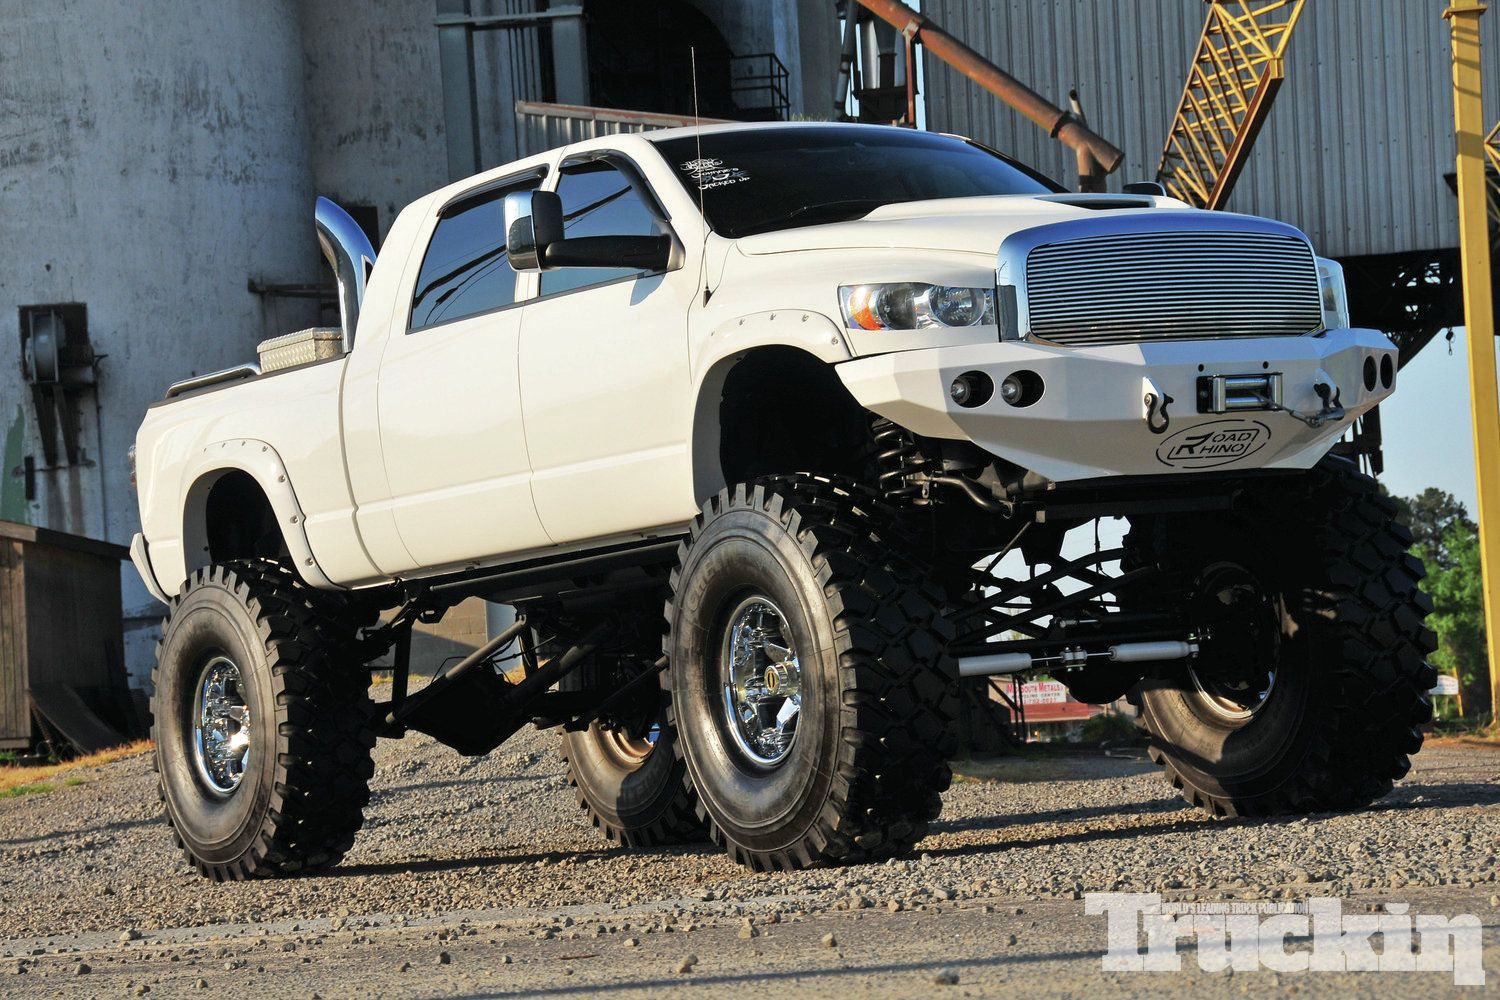 1000 images about dodge ram on pinterest dodge ram trucks trucks and dodge cummins shocks for a 2008 dodge 2500 mega cab - 2015 Dodge Ram 2500 Mega Cab Lifted Interior